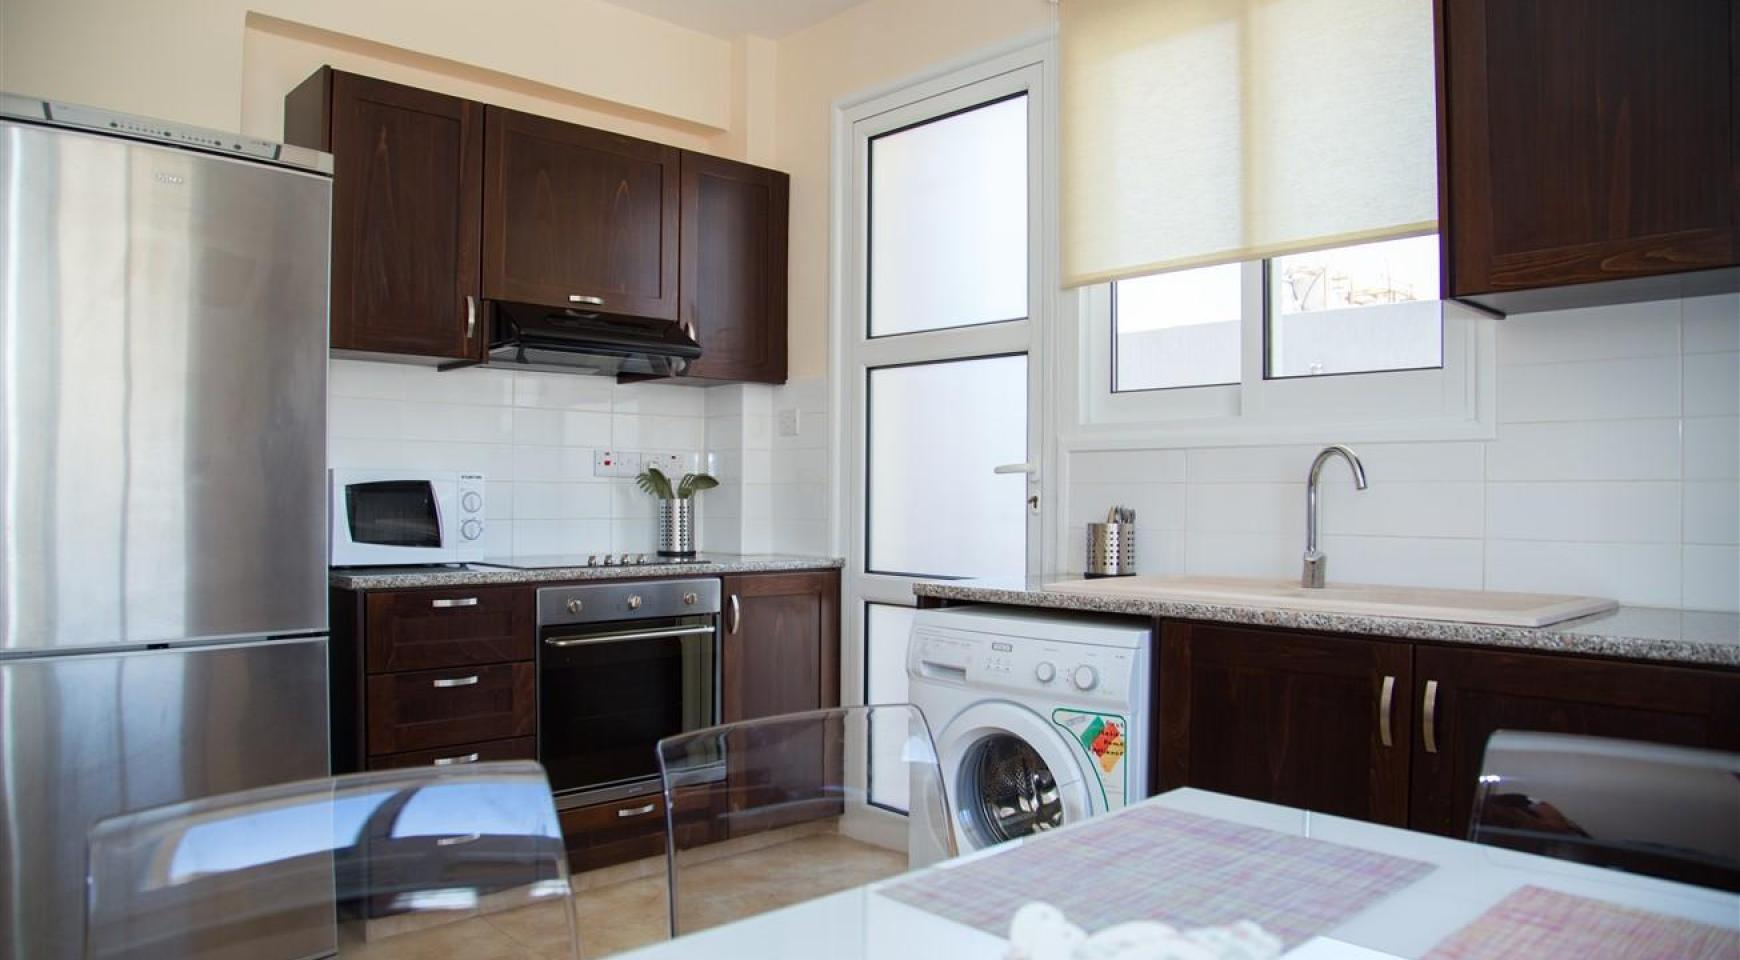 Luxury One Bedroom Apartment Frida 204 in the Tourist Area - 5